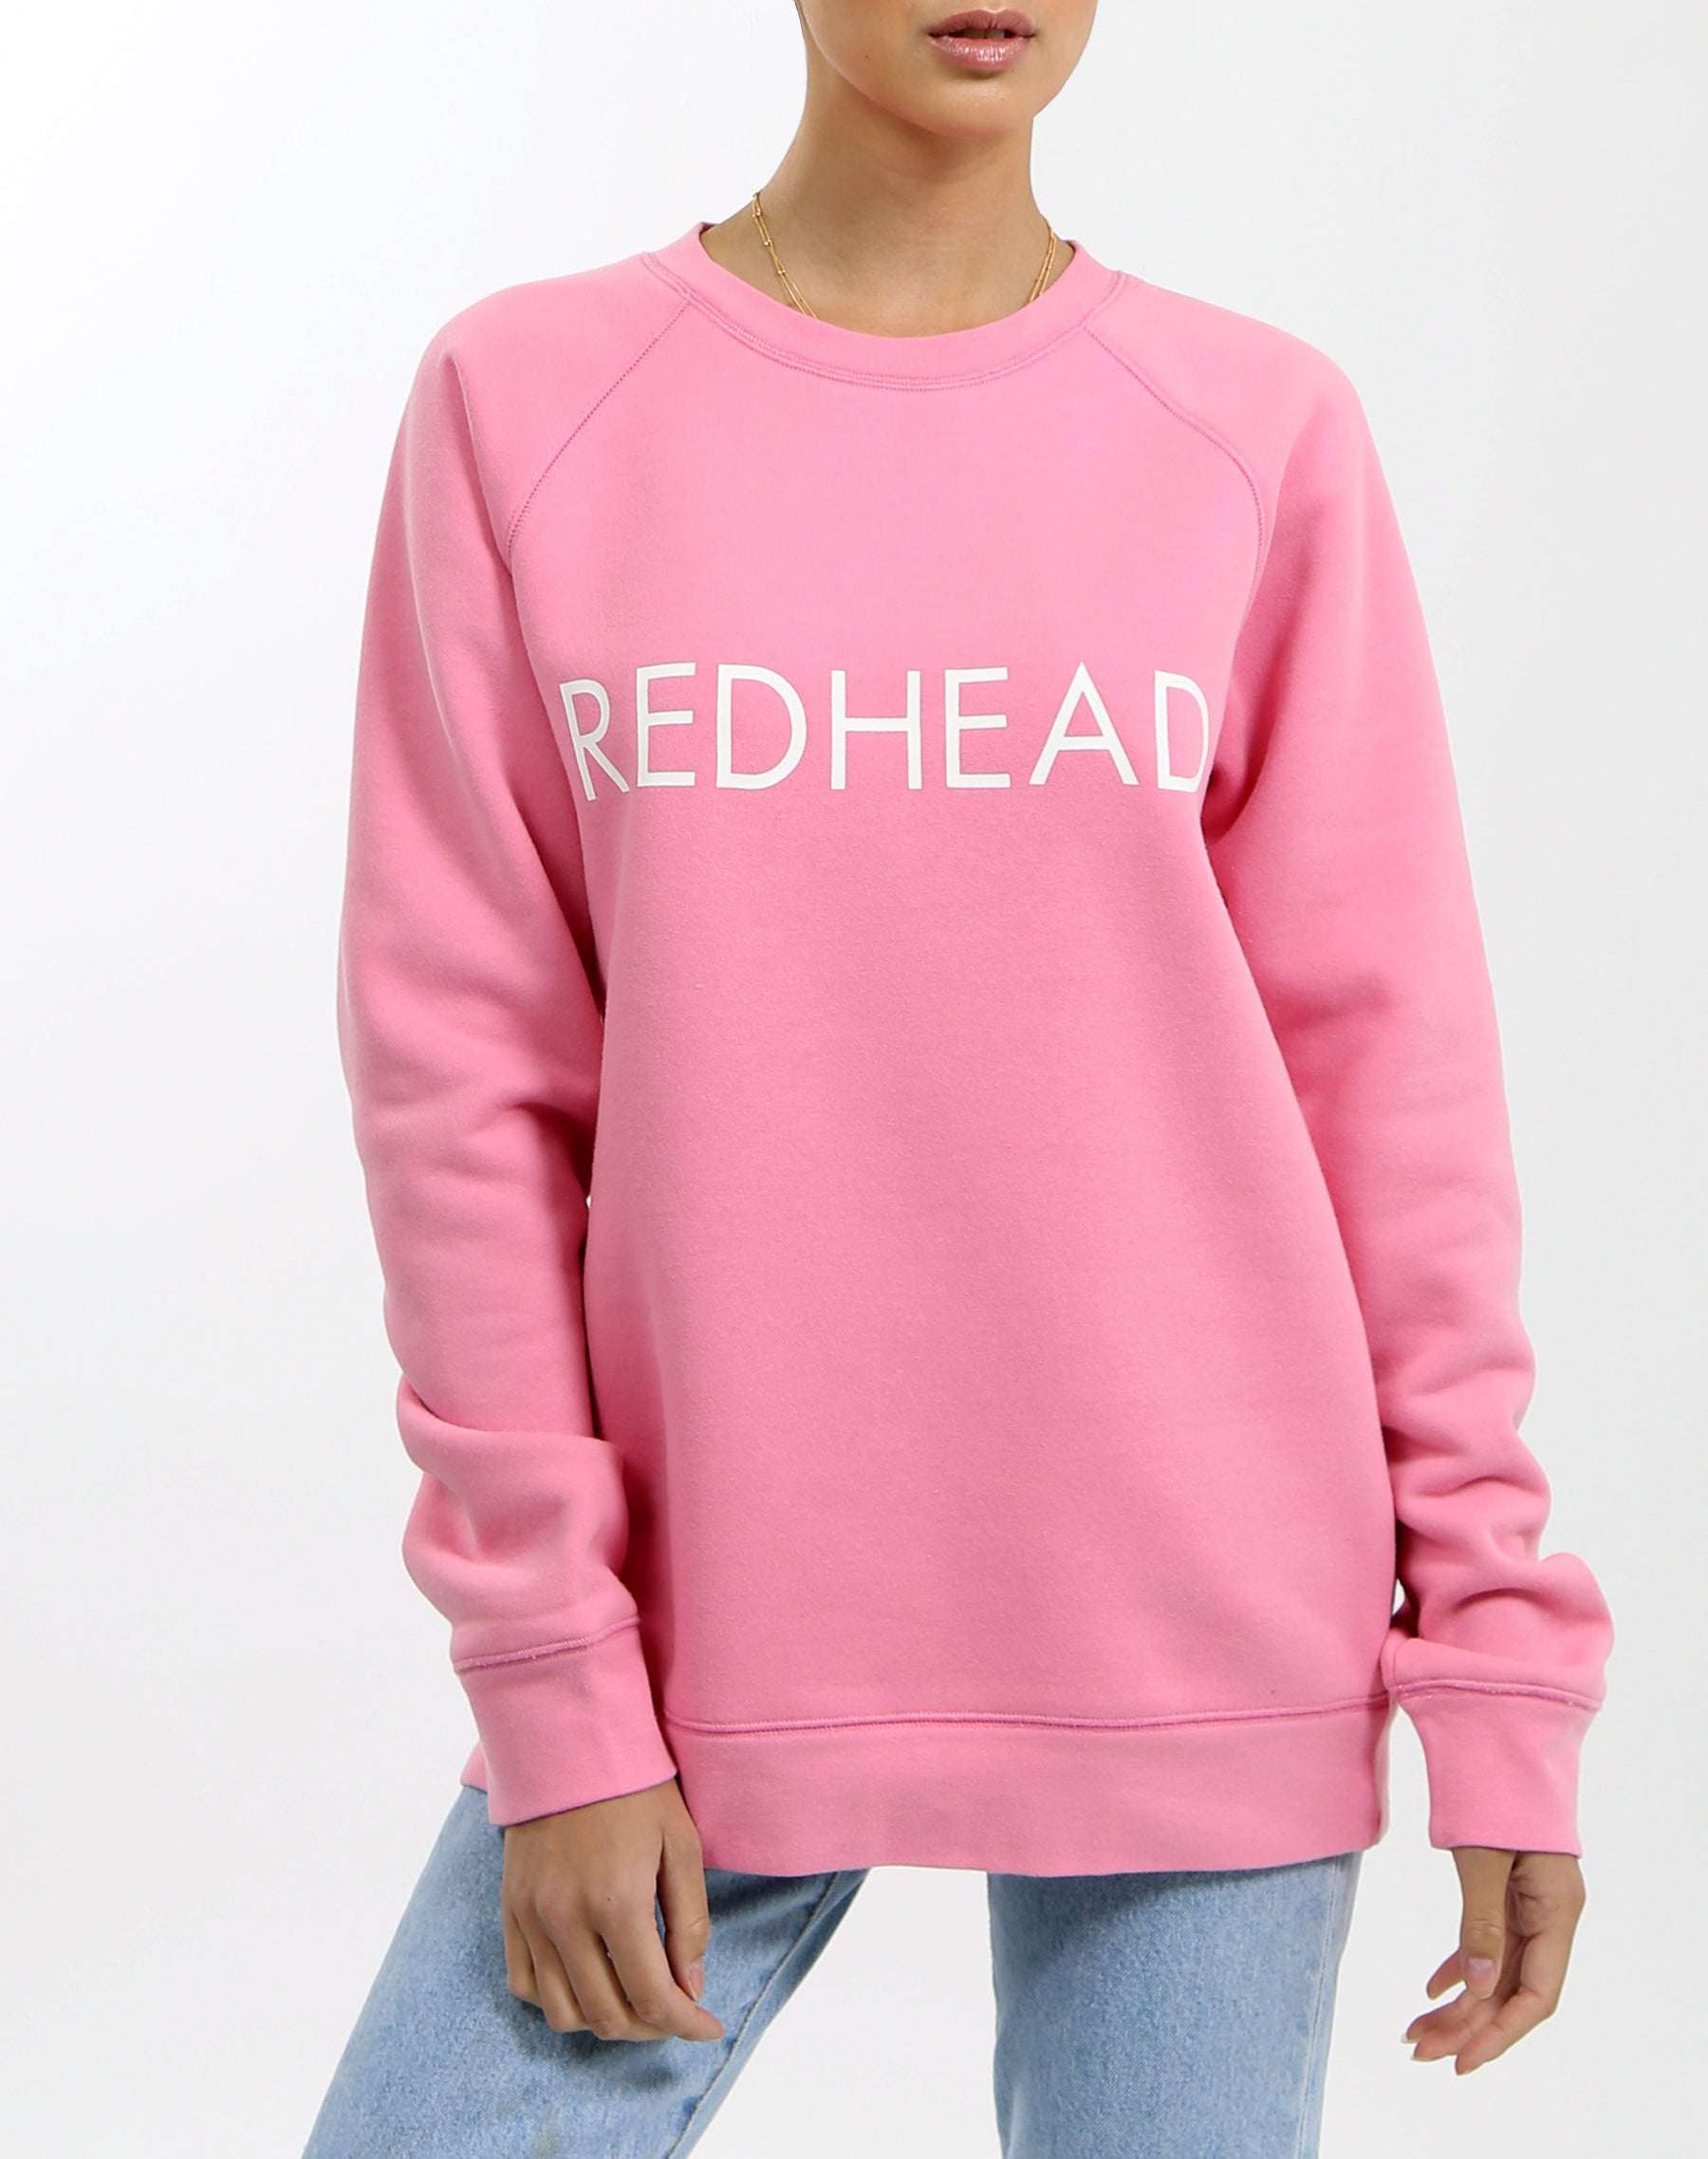 Photo of the Redhead classic crew neck sweatshirt in hot pink by Brunette the Label.